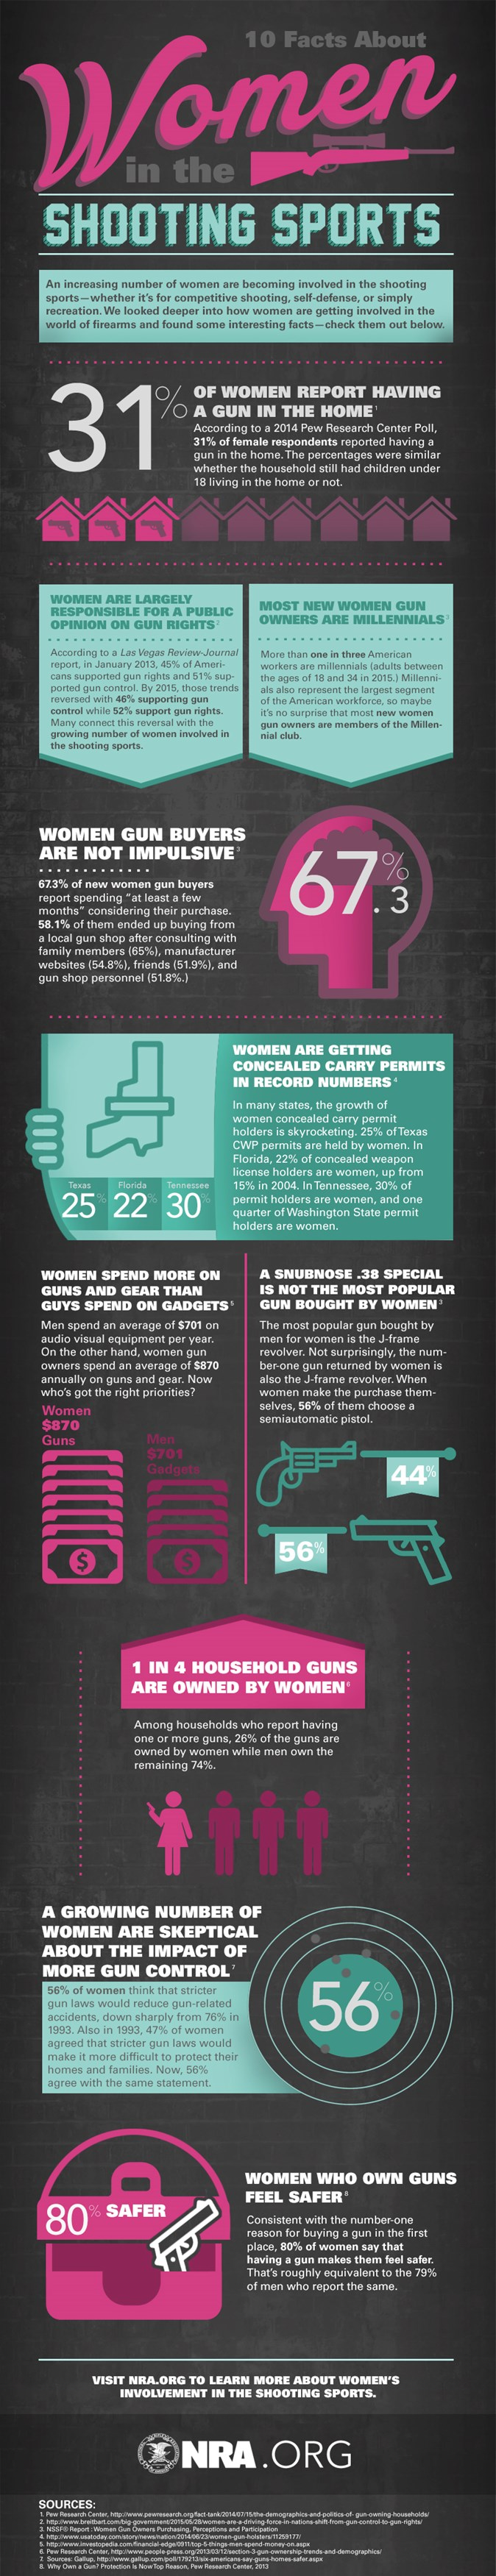 Women in shooting sports infographic